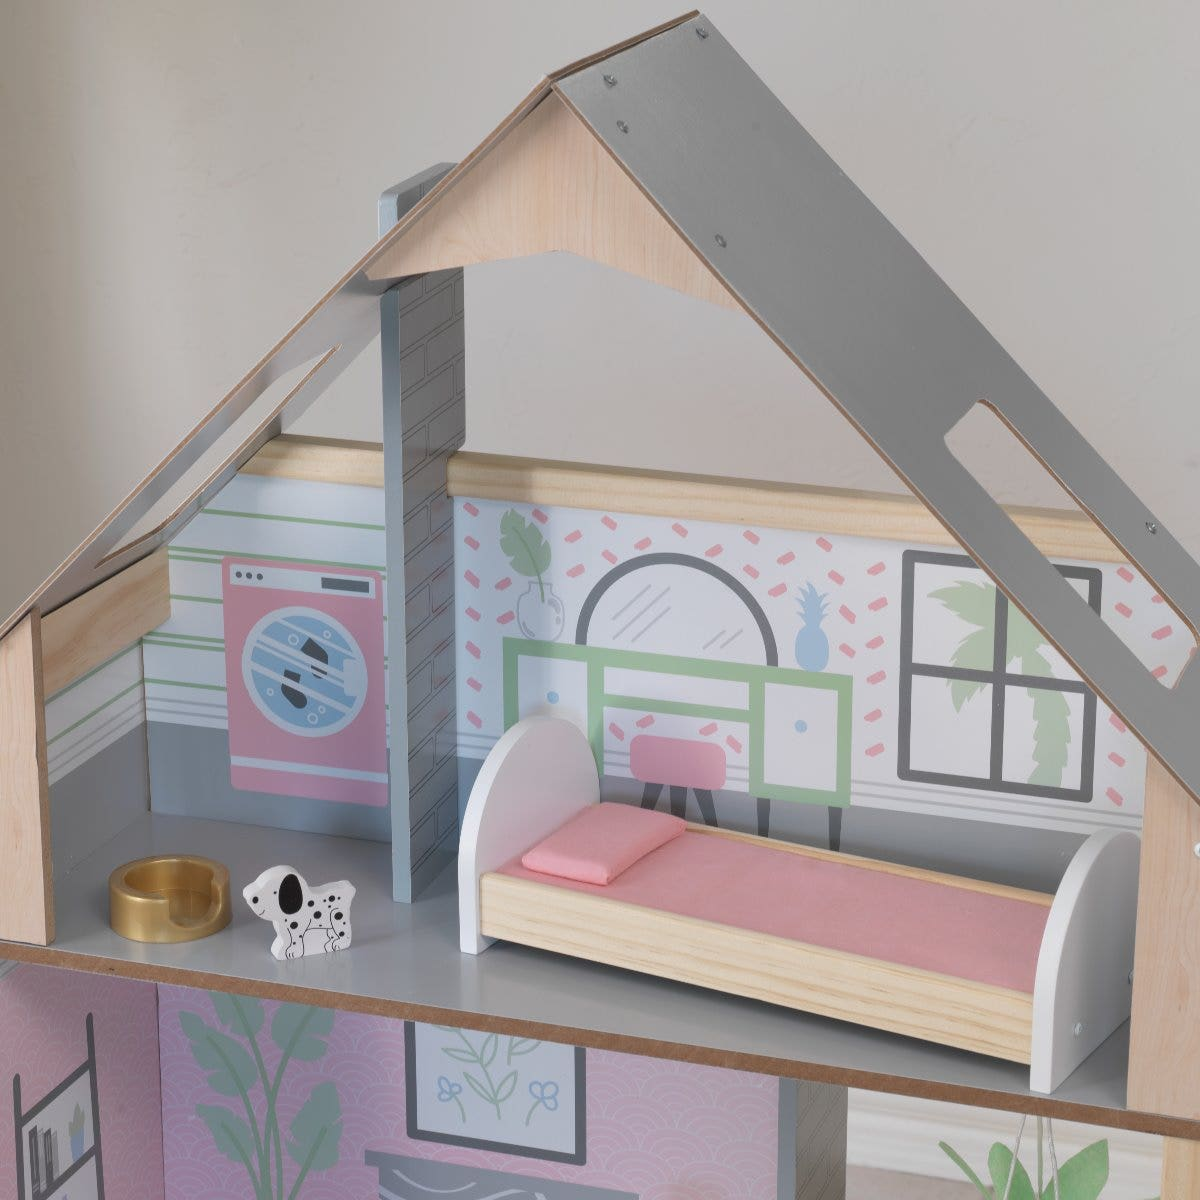 Top floor with skylights for light and an open back for easy play